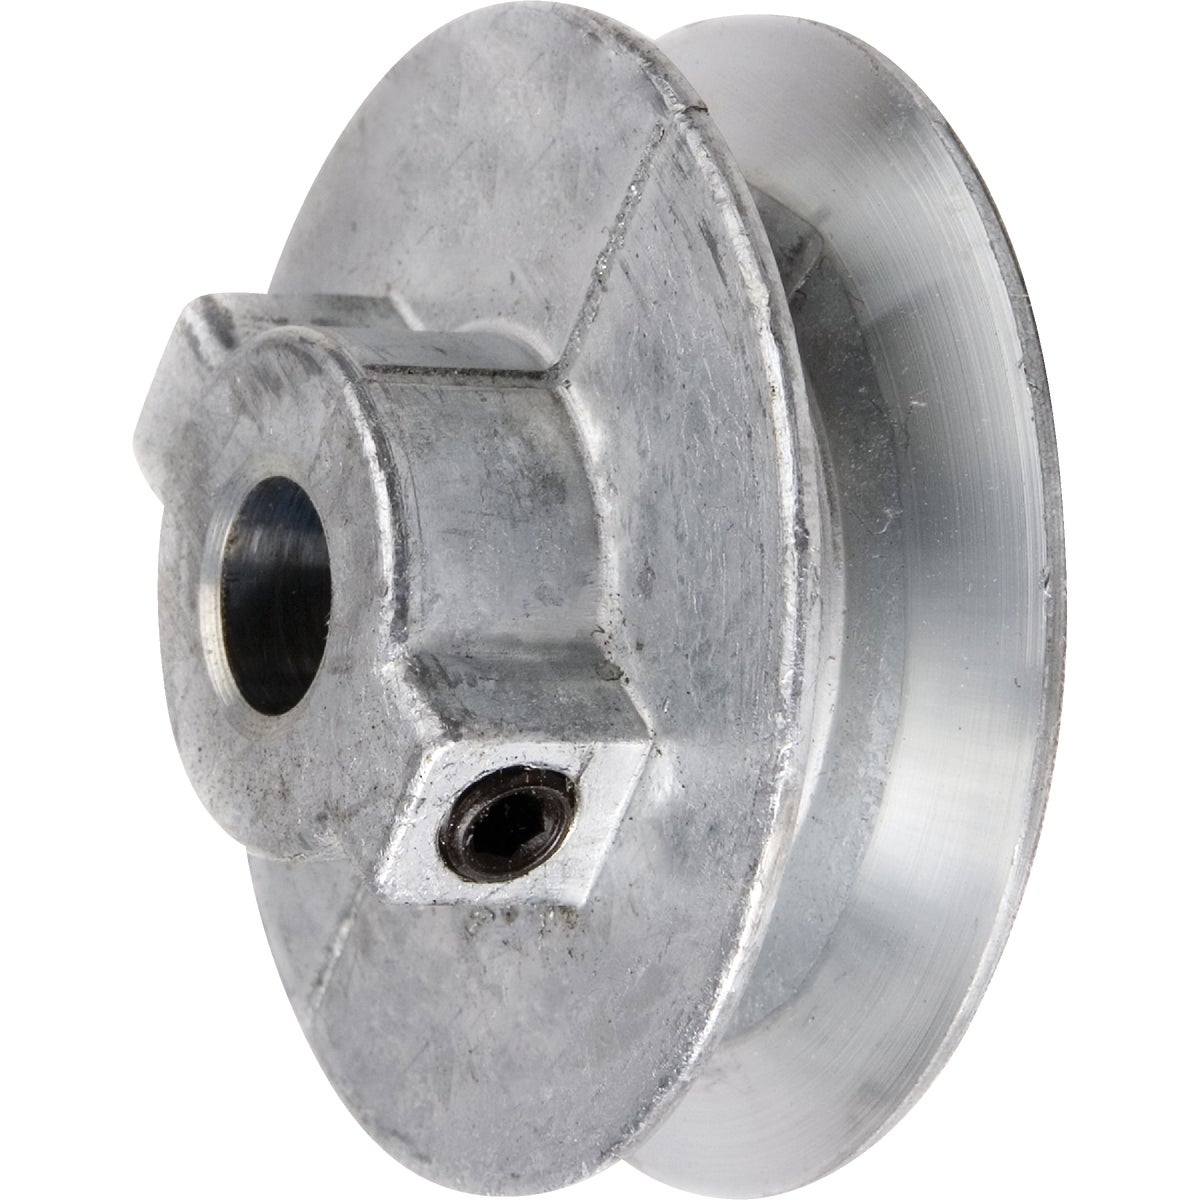 4X5/8 PULLEY - 400A6 by Chicago Die Casting